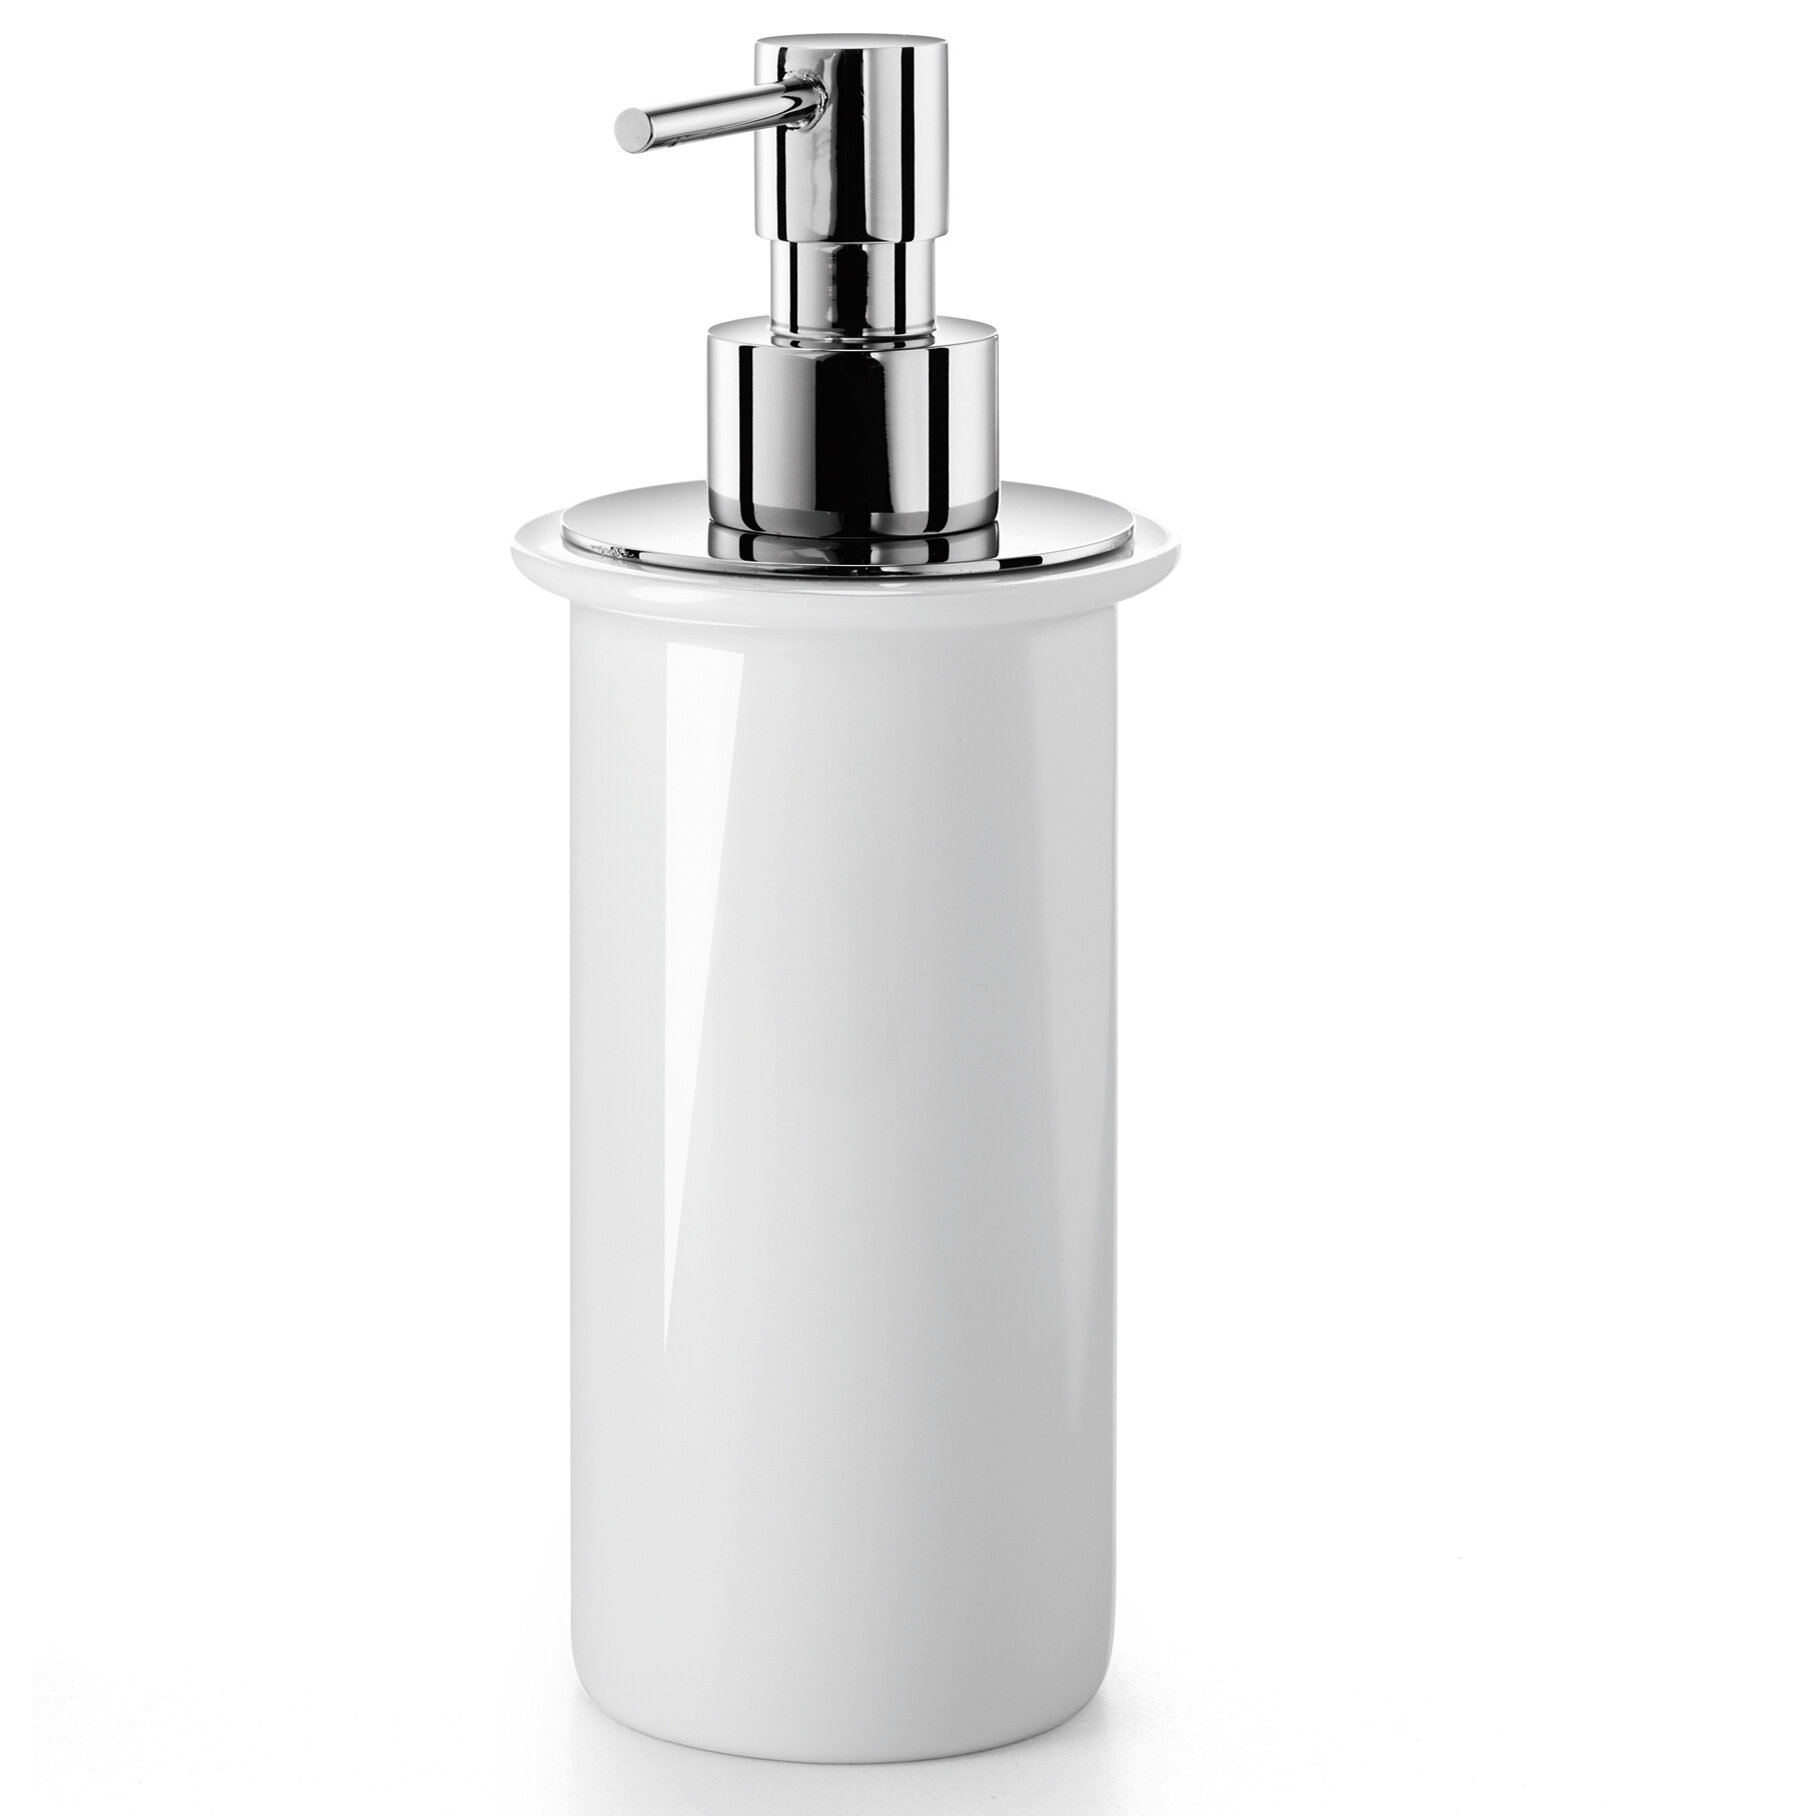 Noanta Soap Dispenser